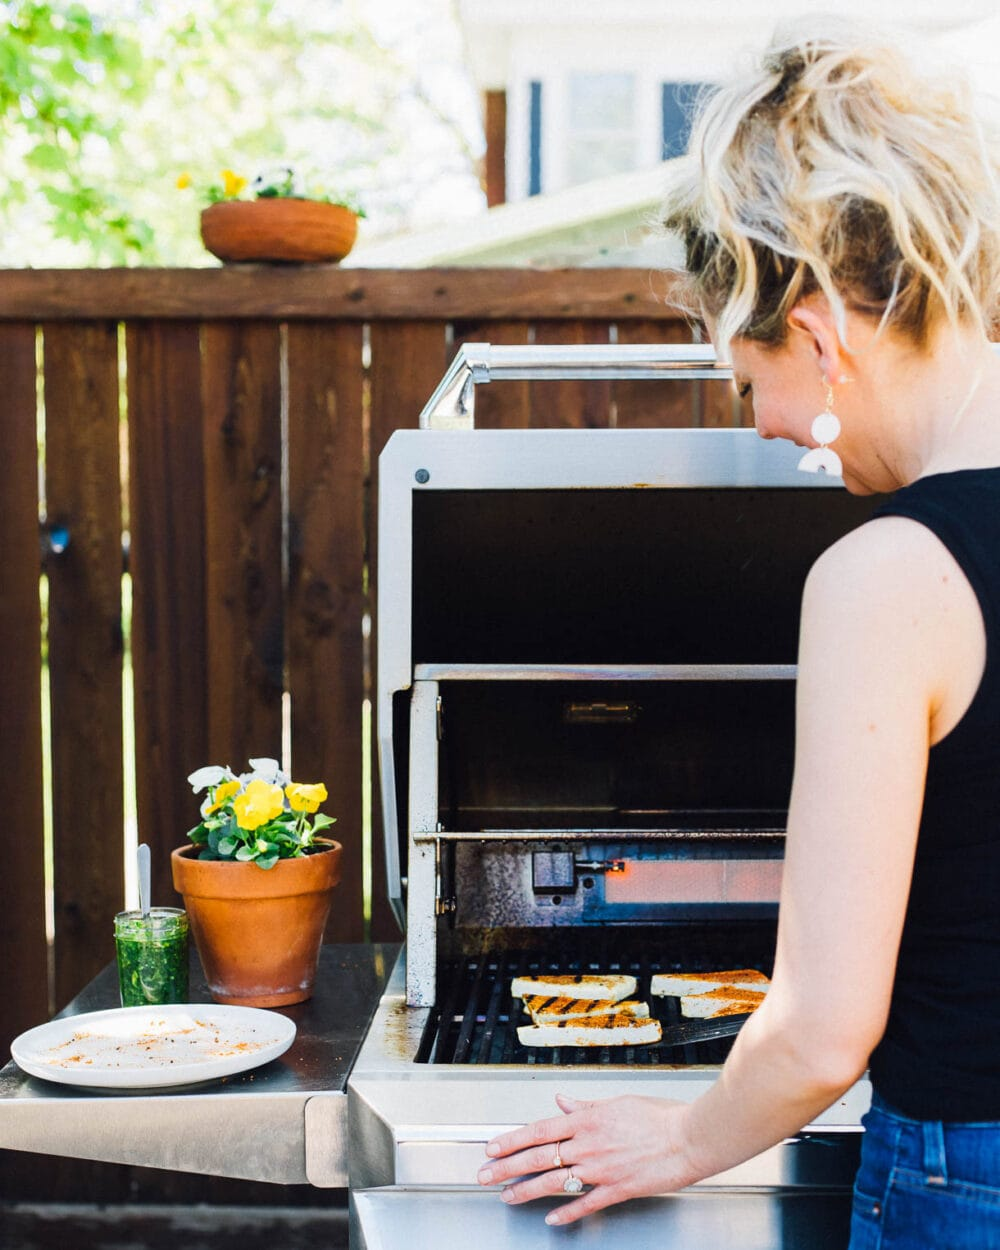 woman with blond hair grilling tofu